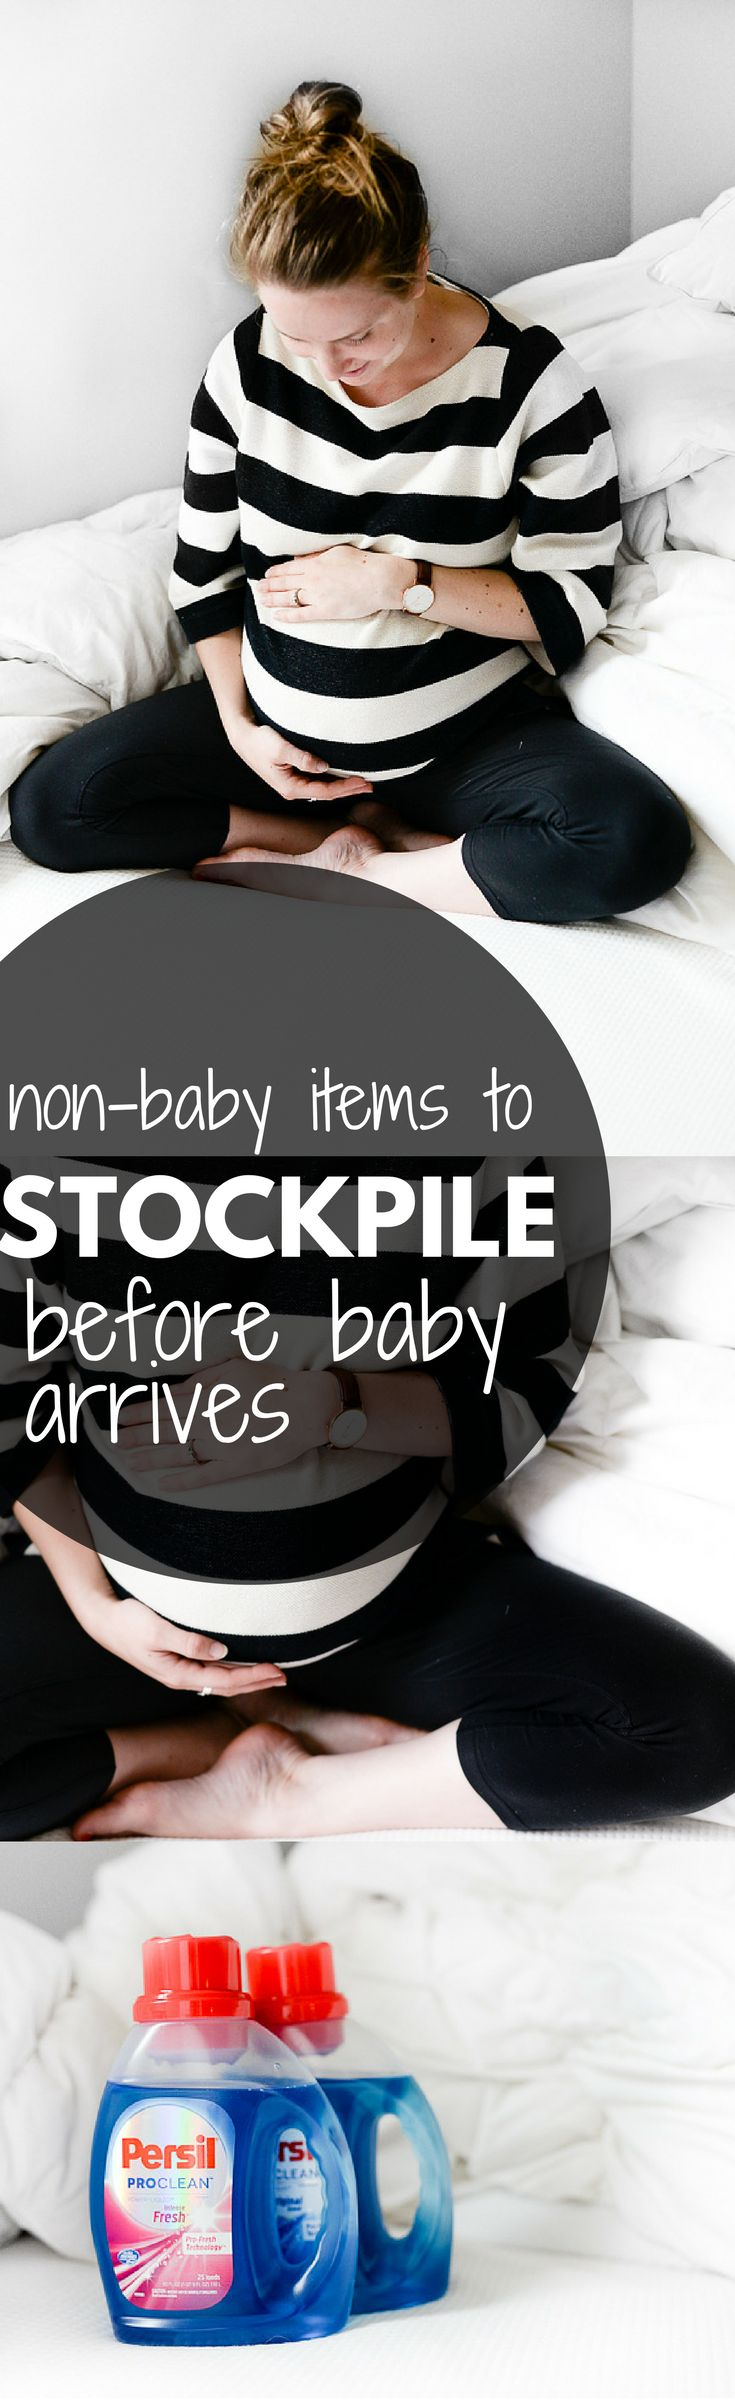 Stockpiled: What We're Stocking Up On Before Baby Arrives